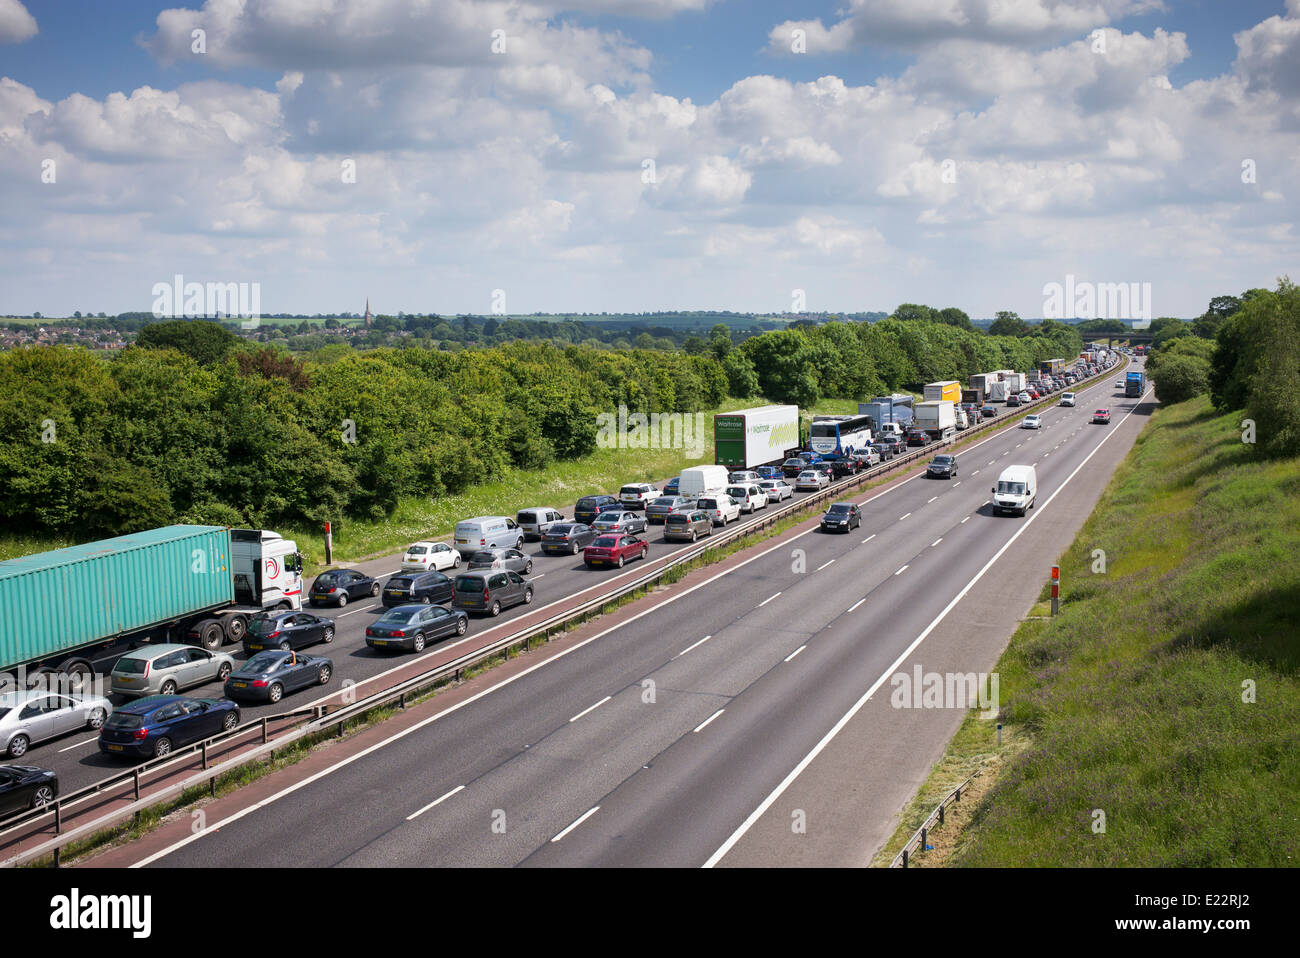 Traffic Jam on the southbound M40 Motorway in Oxfordshire, England - Stock Image